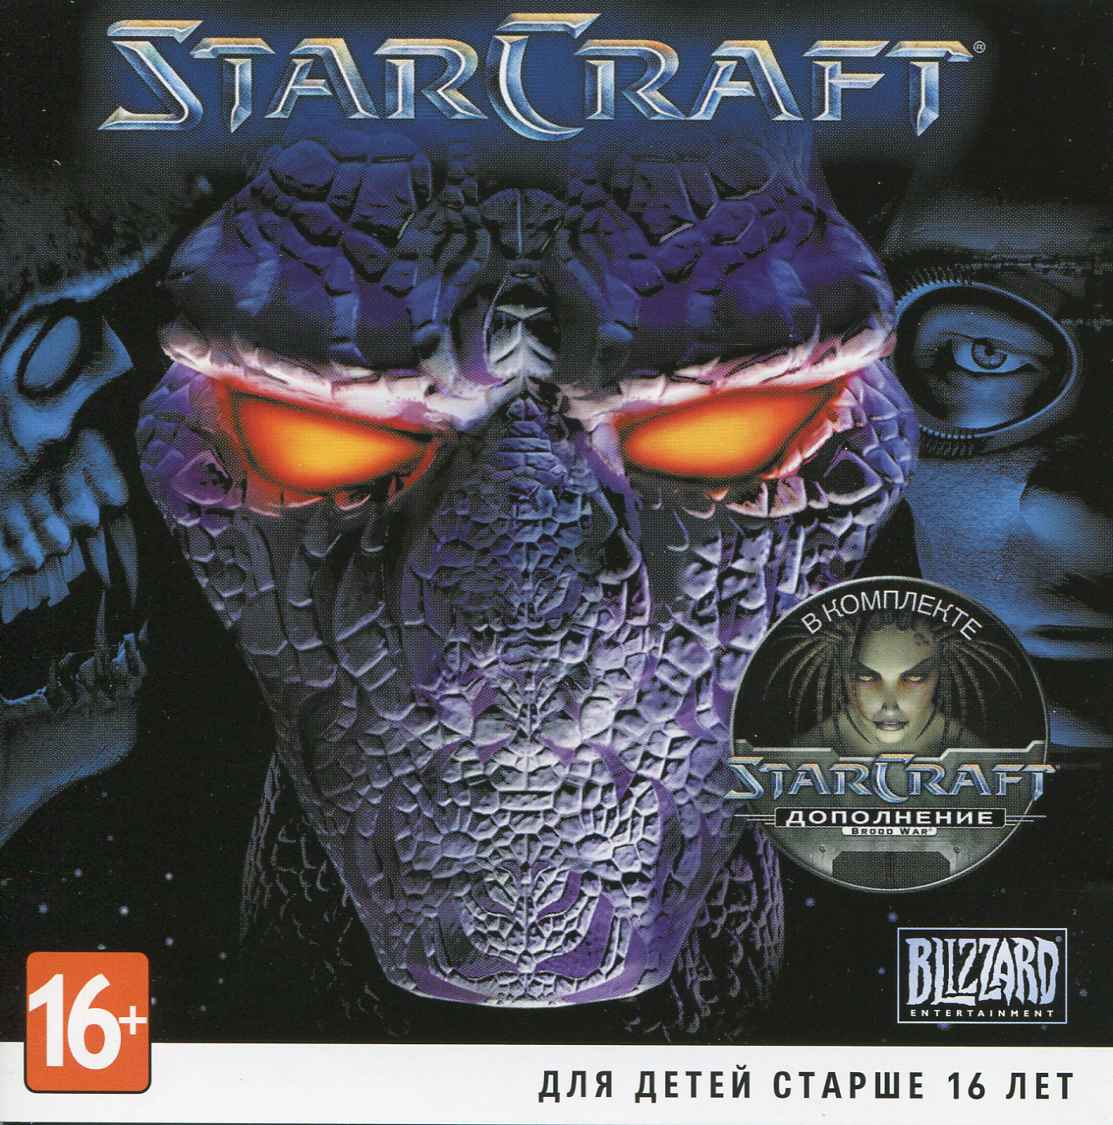 Starcraft + Starcraft: Brood War (Ключ для Battle.net)